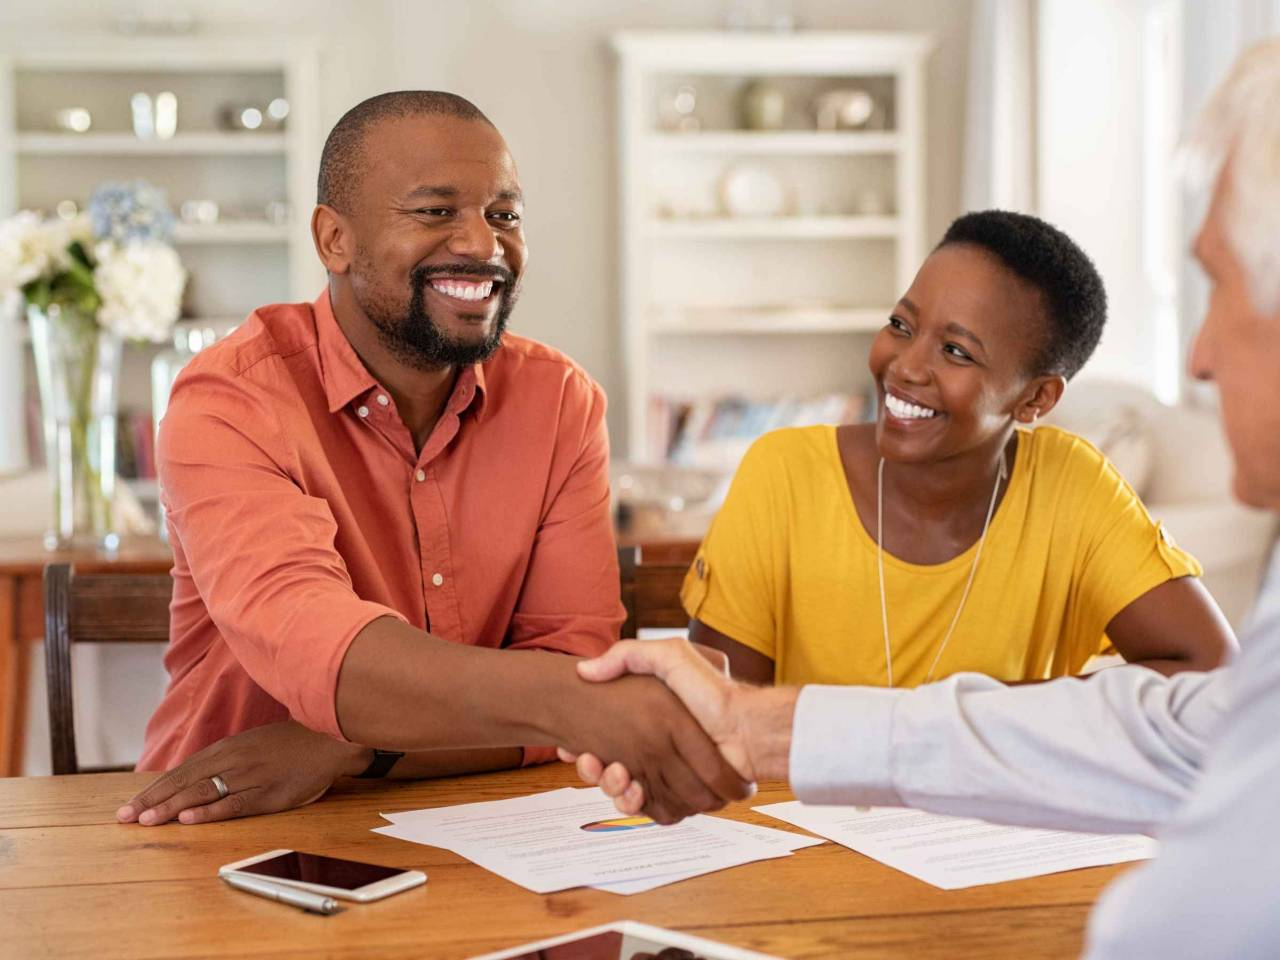 Mature black husband shaking hands with senior agent on taking loan.